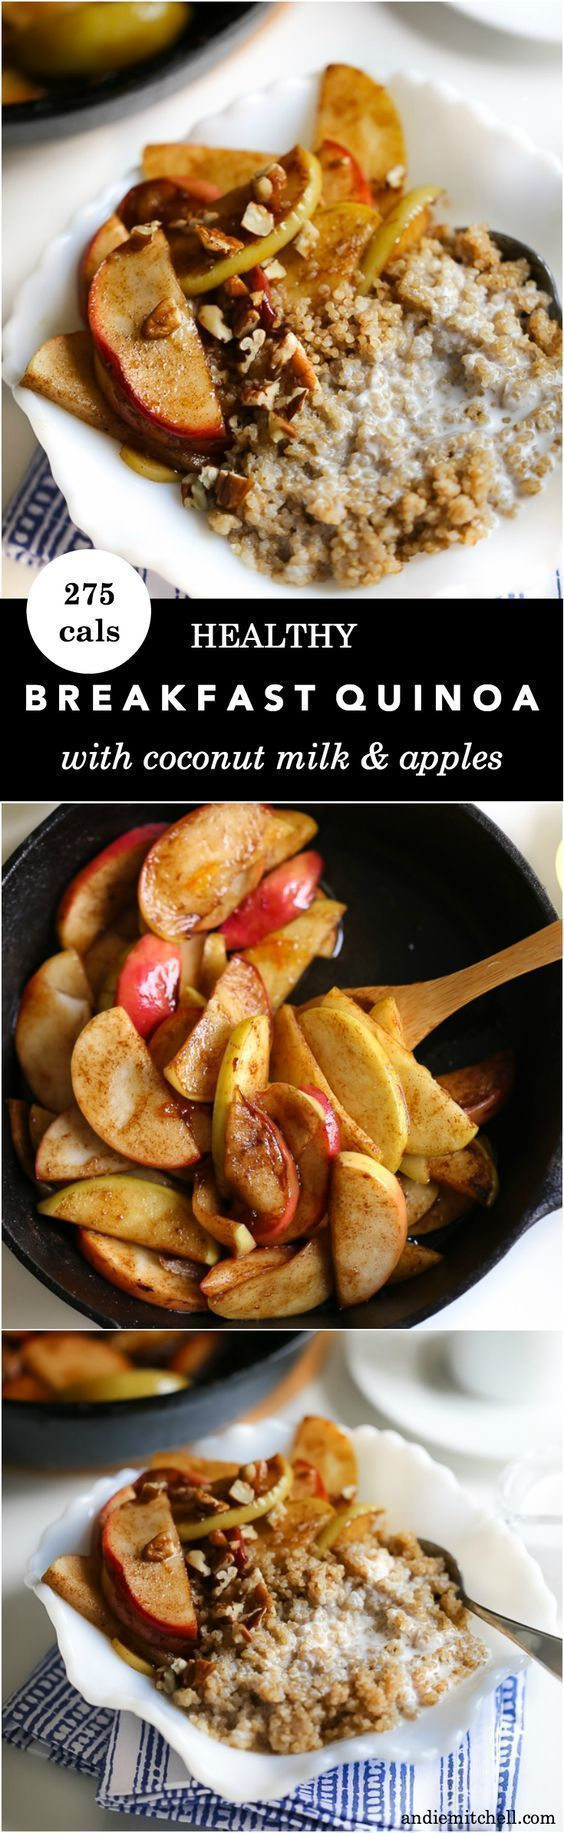 Healthy Breakfast Quinoa with Coconut Milk and Apples! You need this delicious and healthy breakfast recipe! It's sweet, filling, whole grain, and so good for you. Only 275 calories per bowl